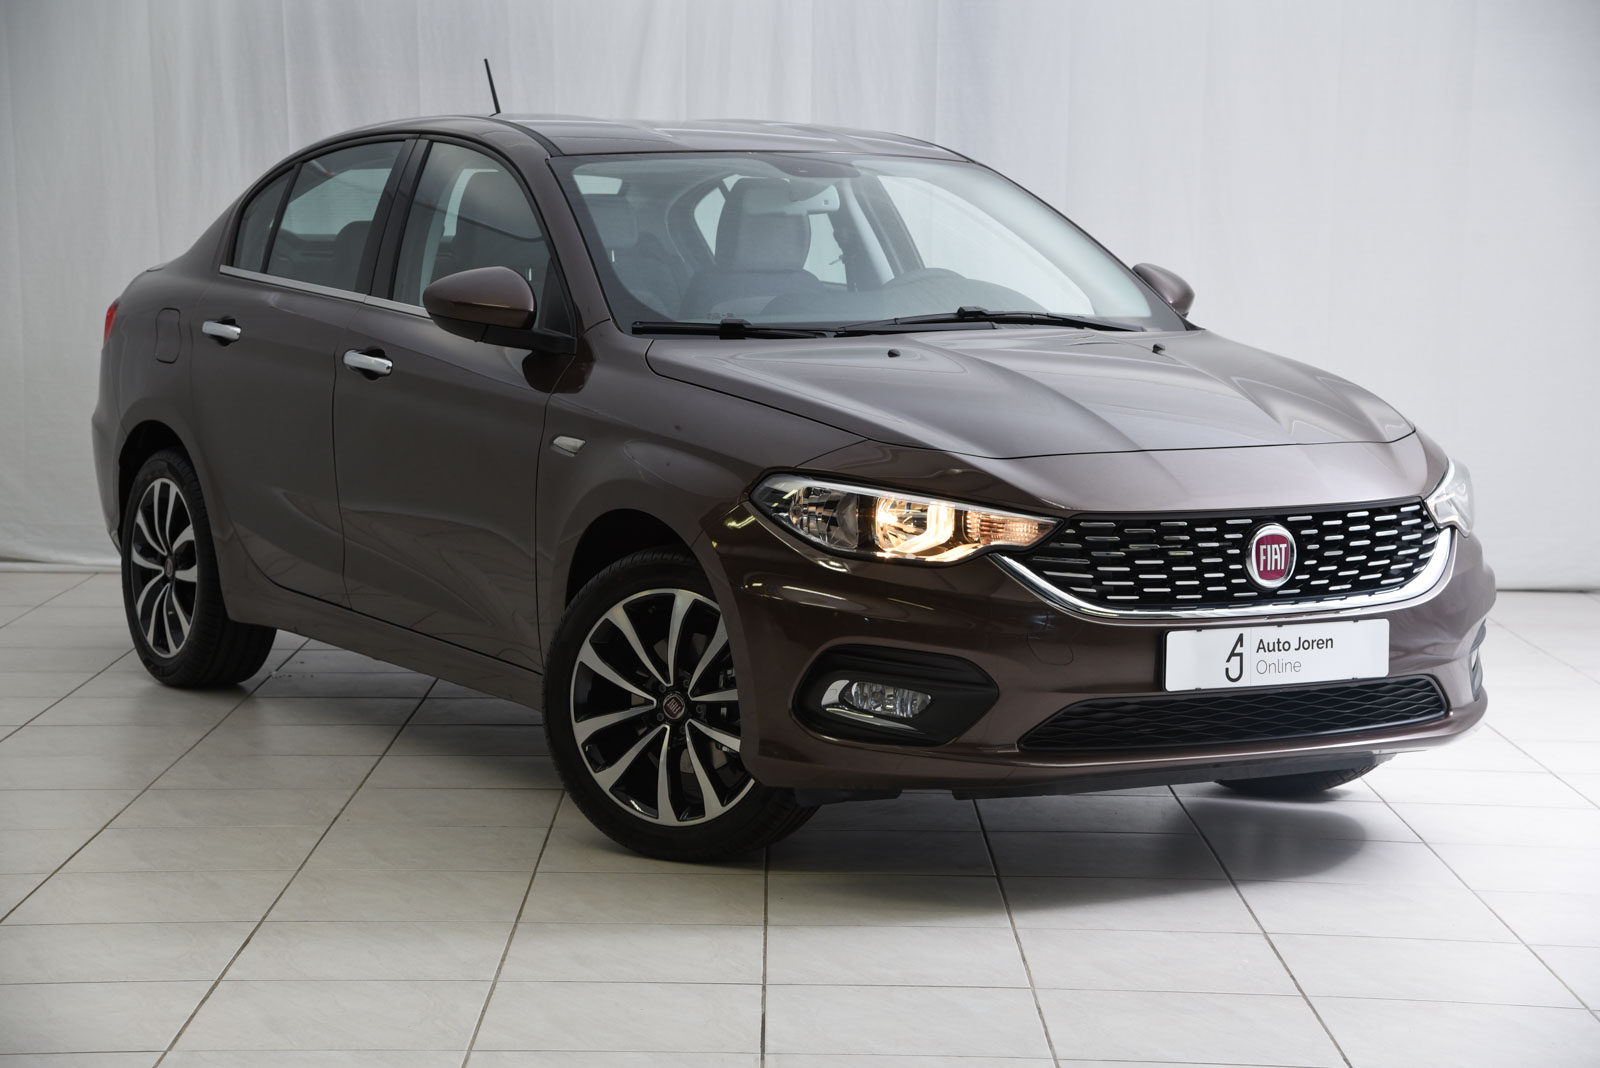 fiat tipo lounge ruime sedan private lease of kopen. Black Bedroom Furniture Sets. Home Design Ideas